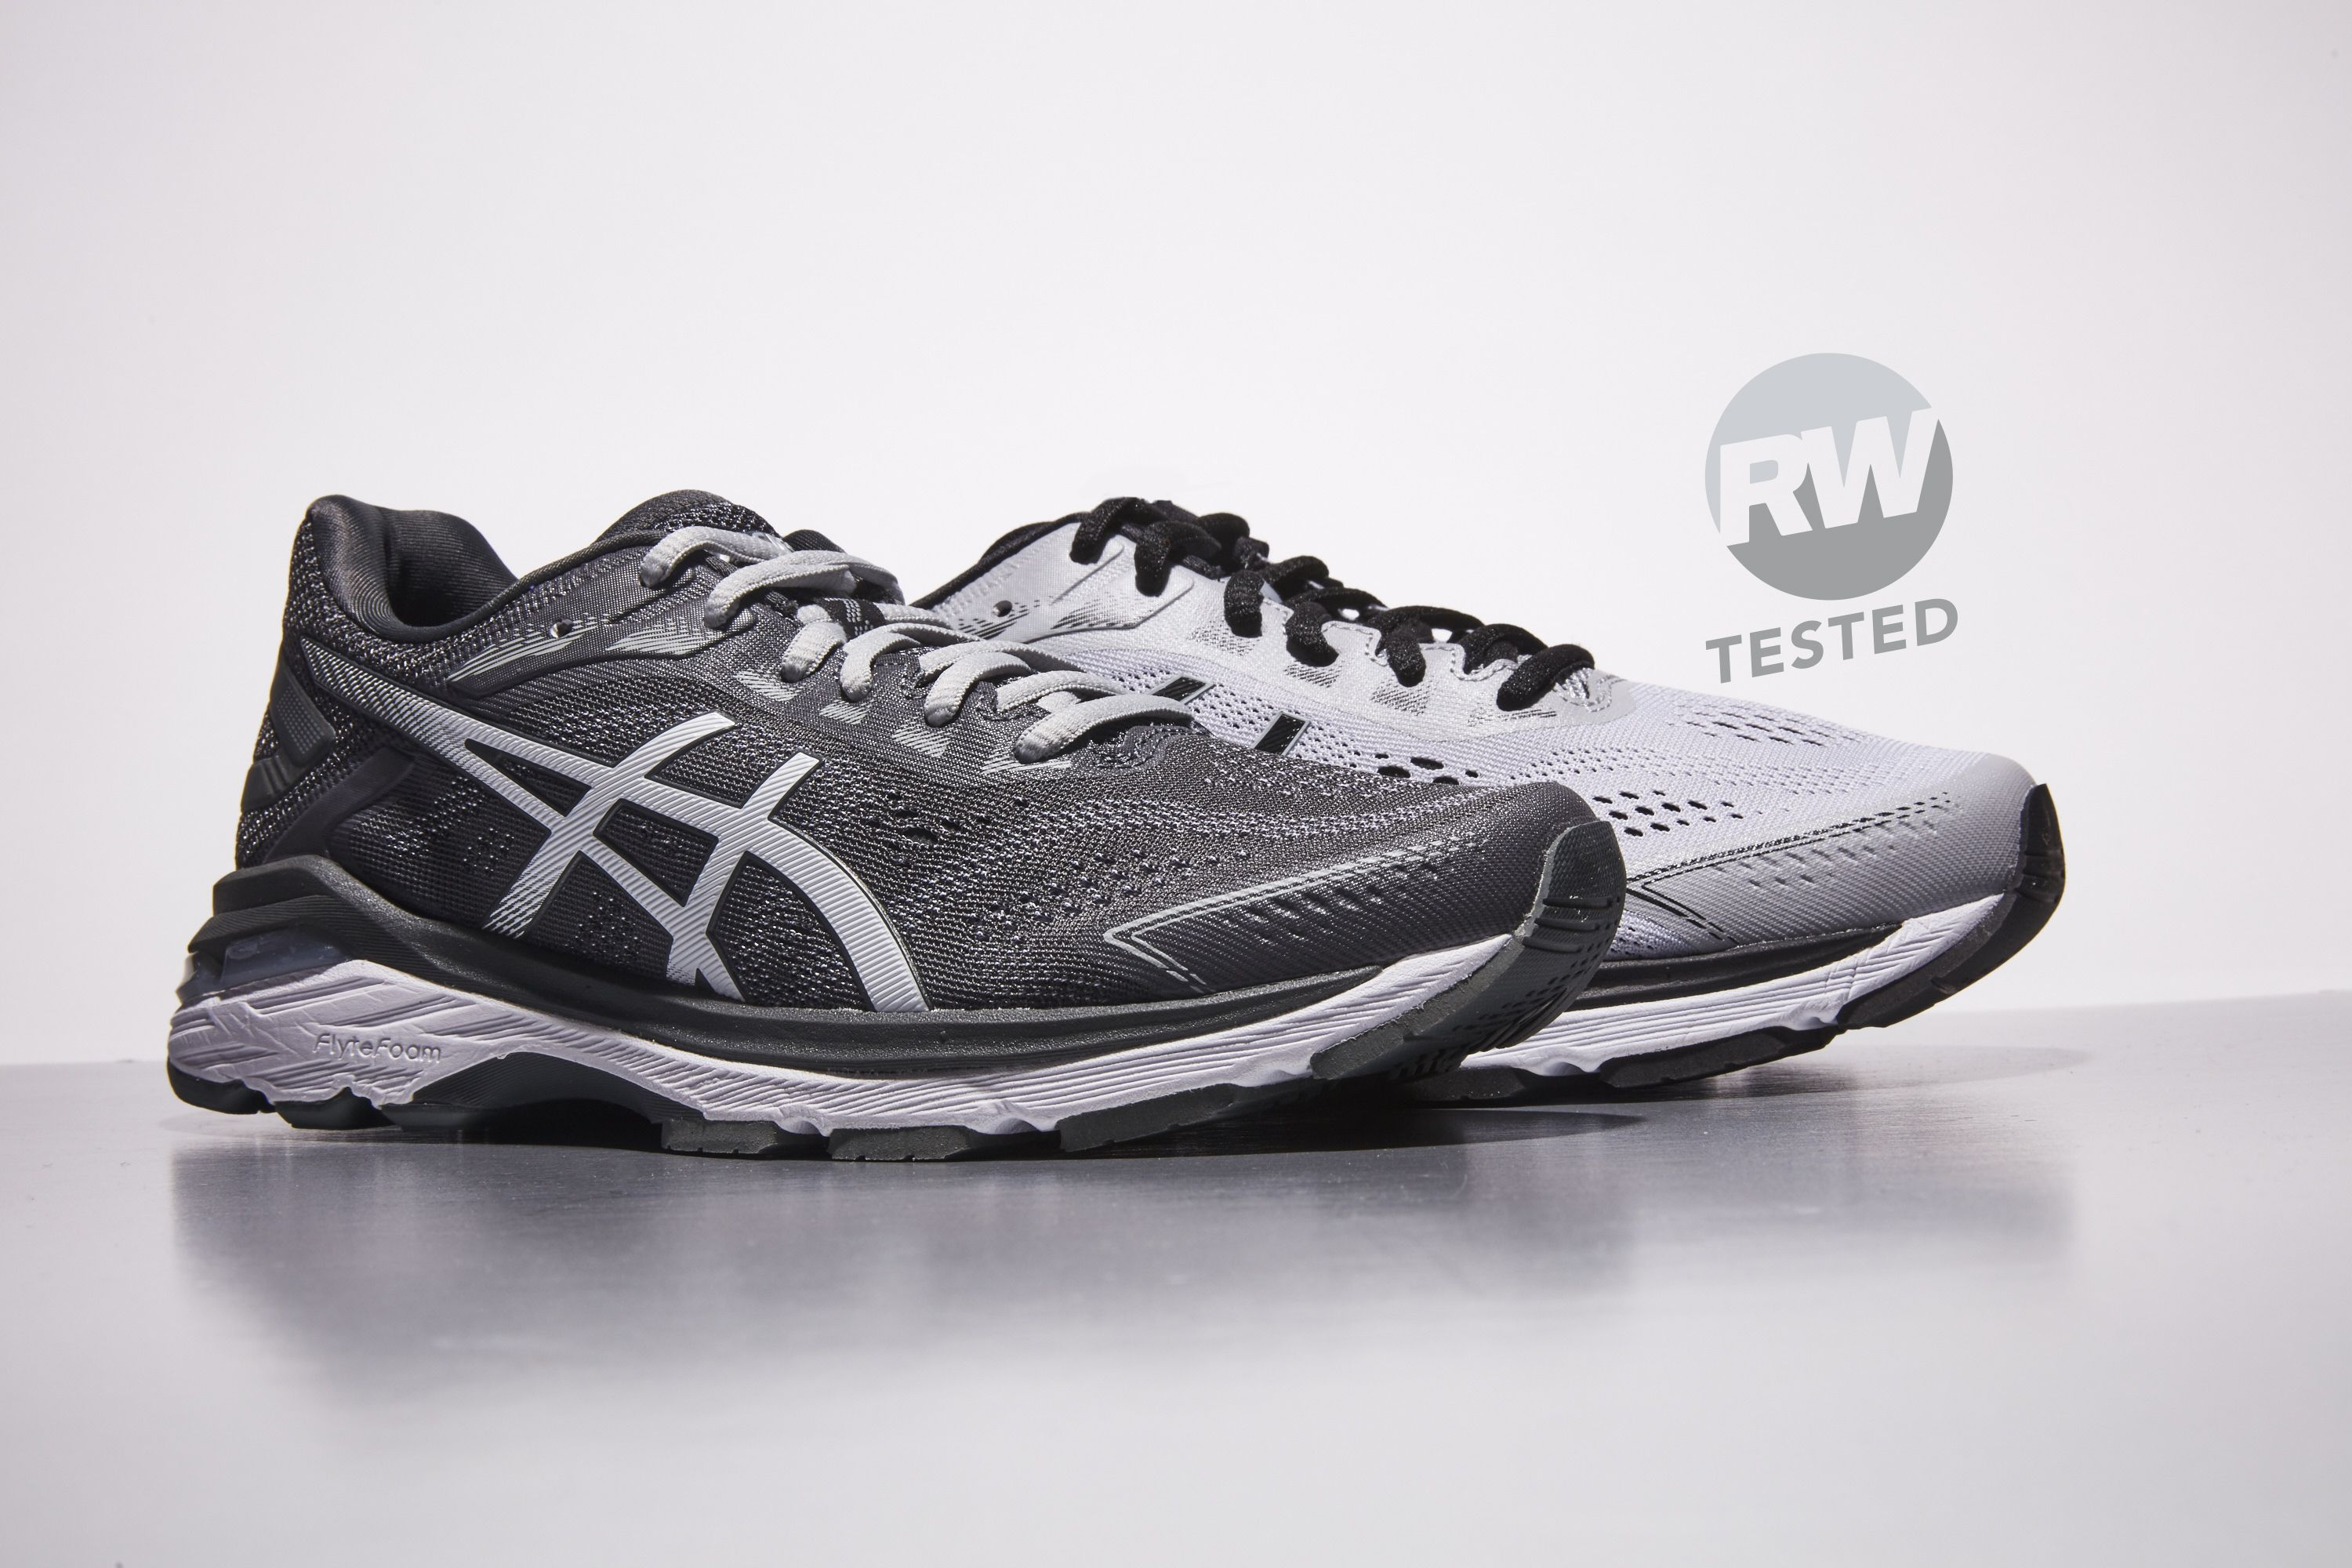 dentro de poco Ordinario alineación  Asics GT-2000 7 Review | Best Running Shoes